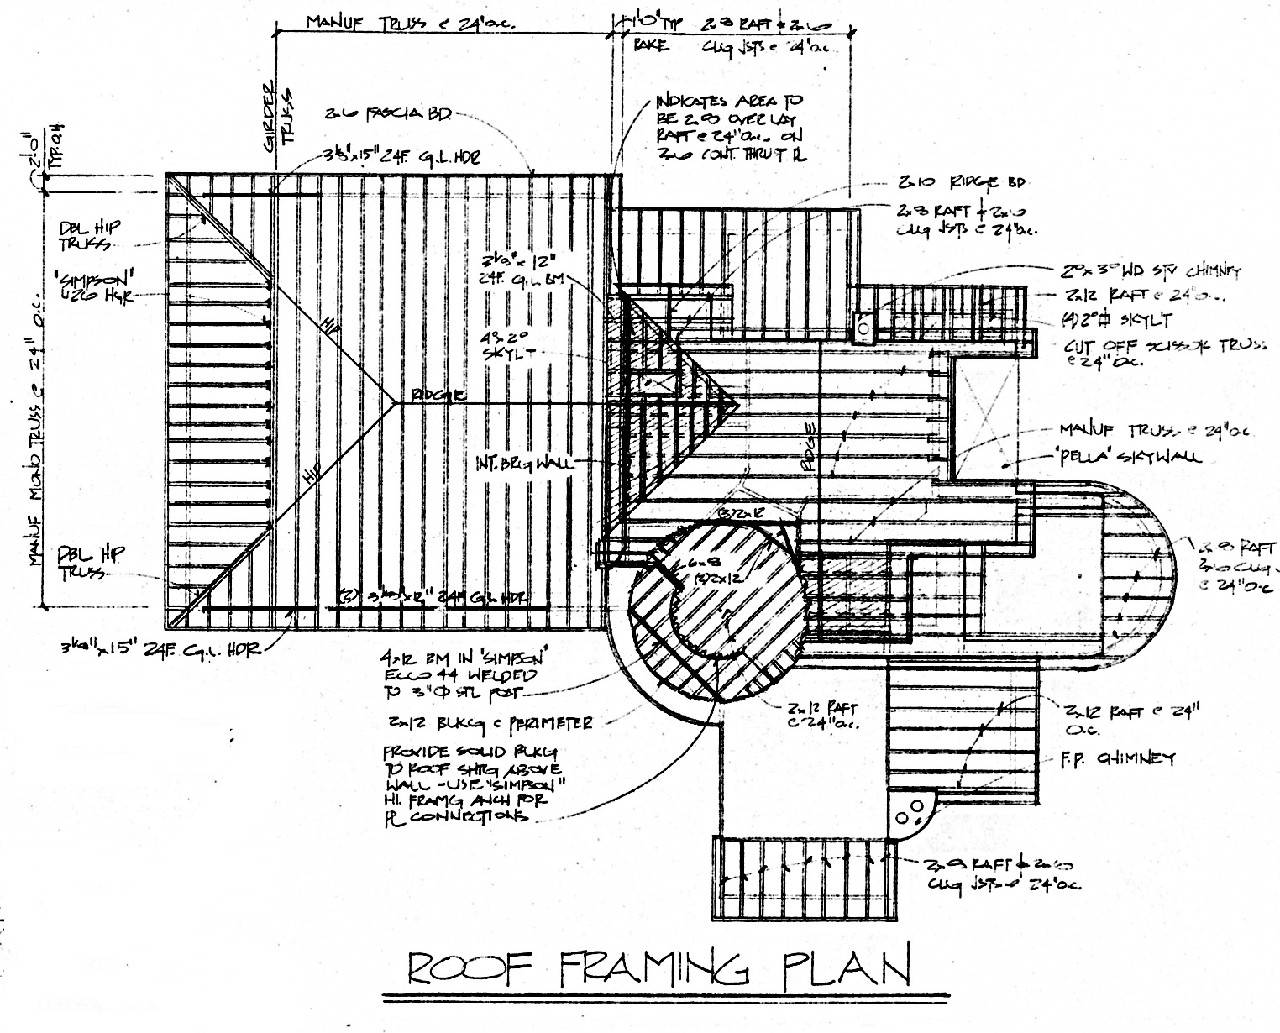 roof framing plans votes house plans 61781 roof framing plans votes 402989 roof framing plans votes